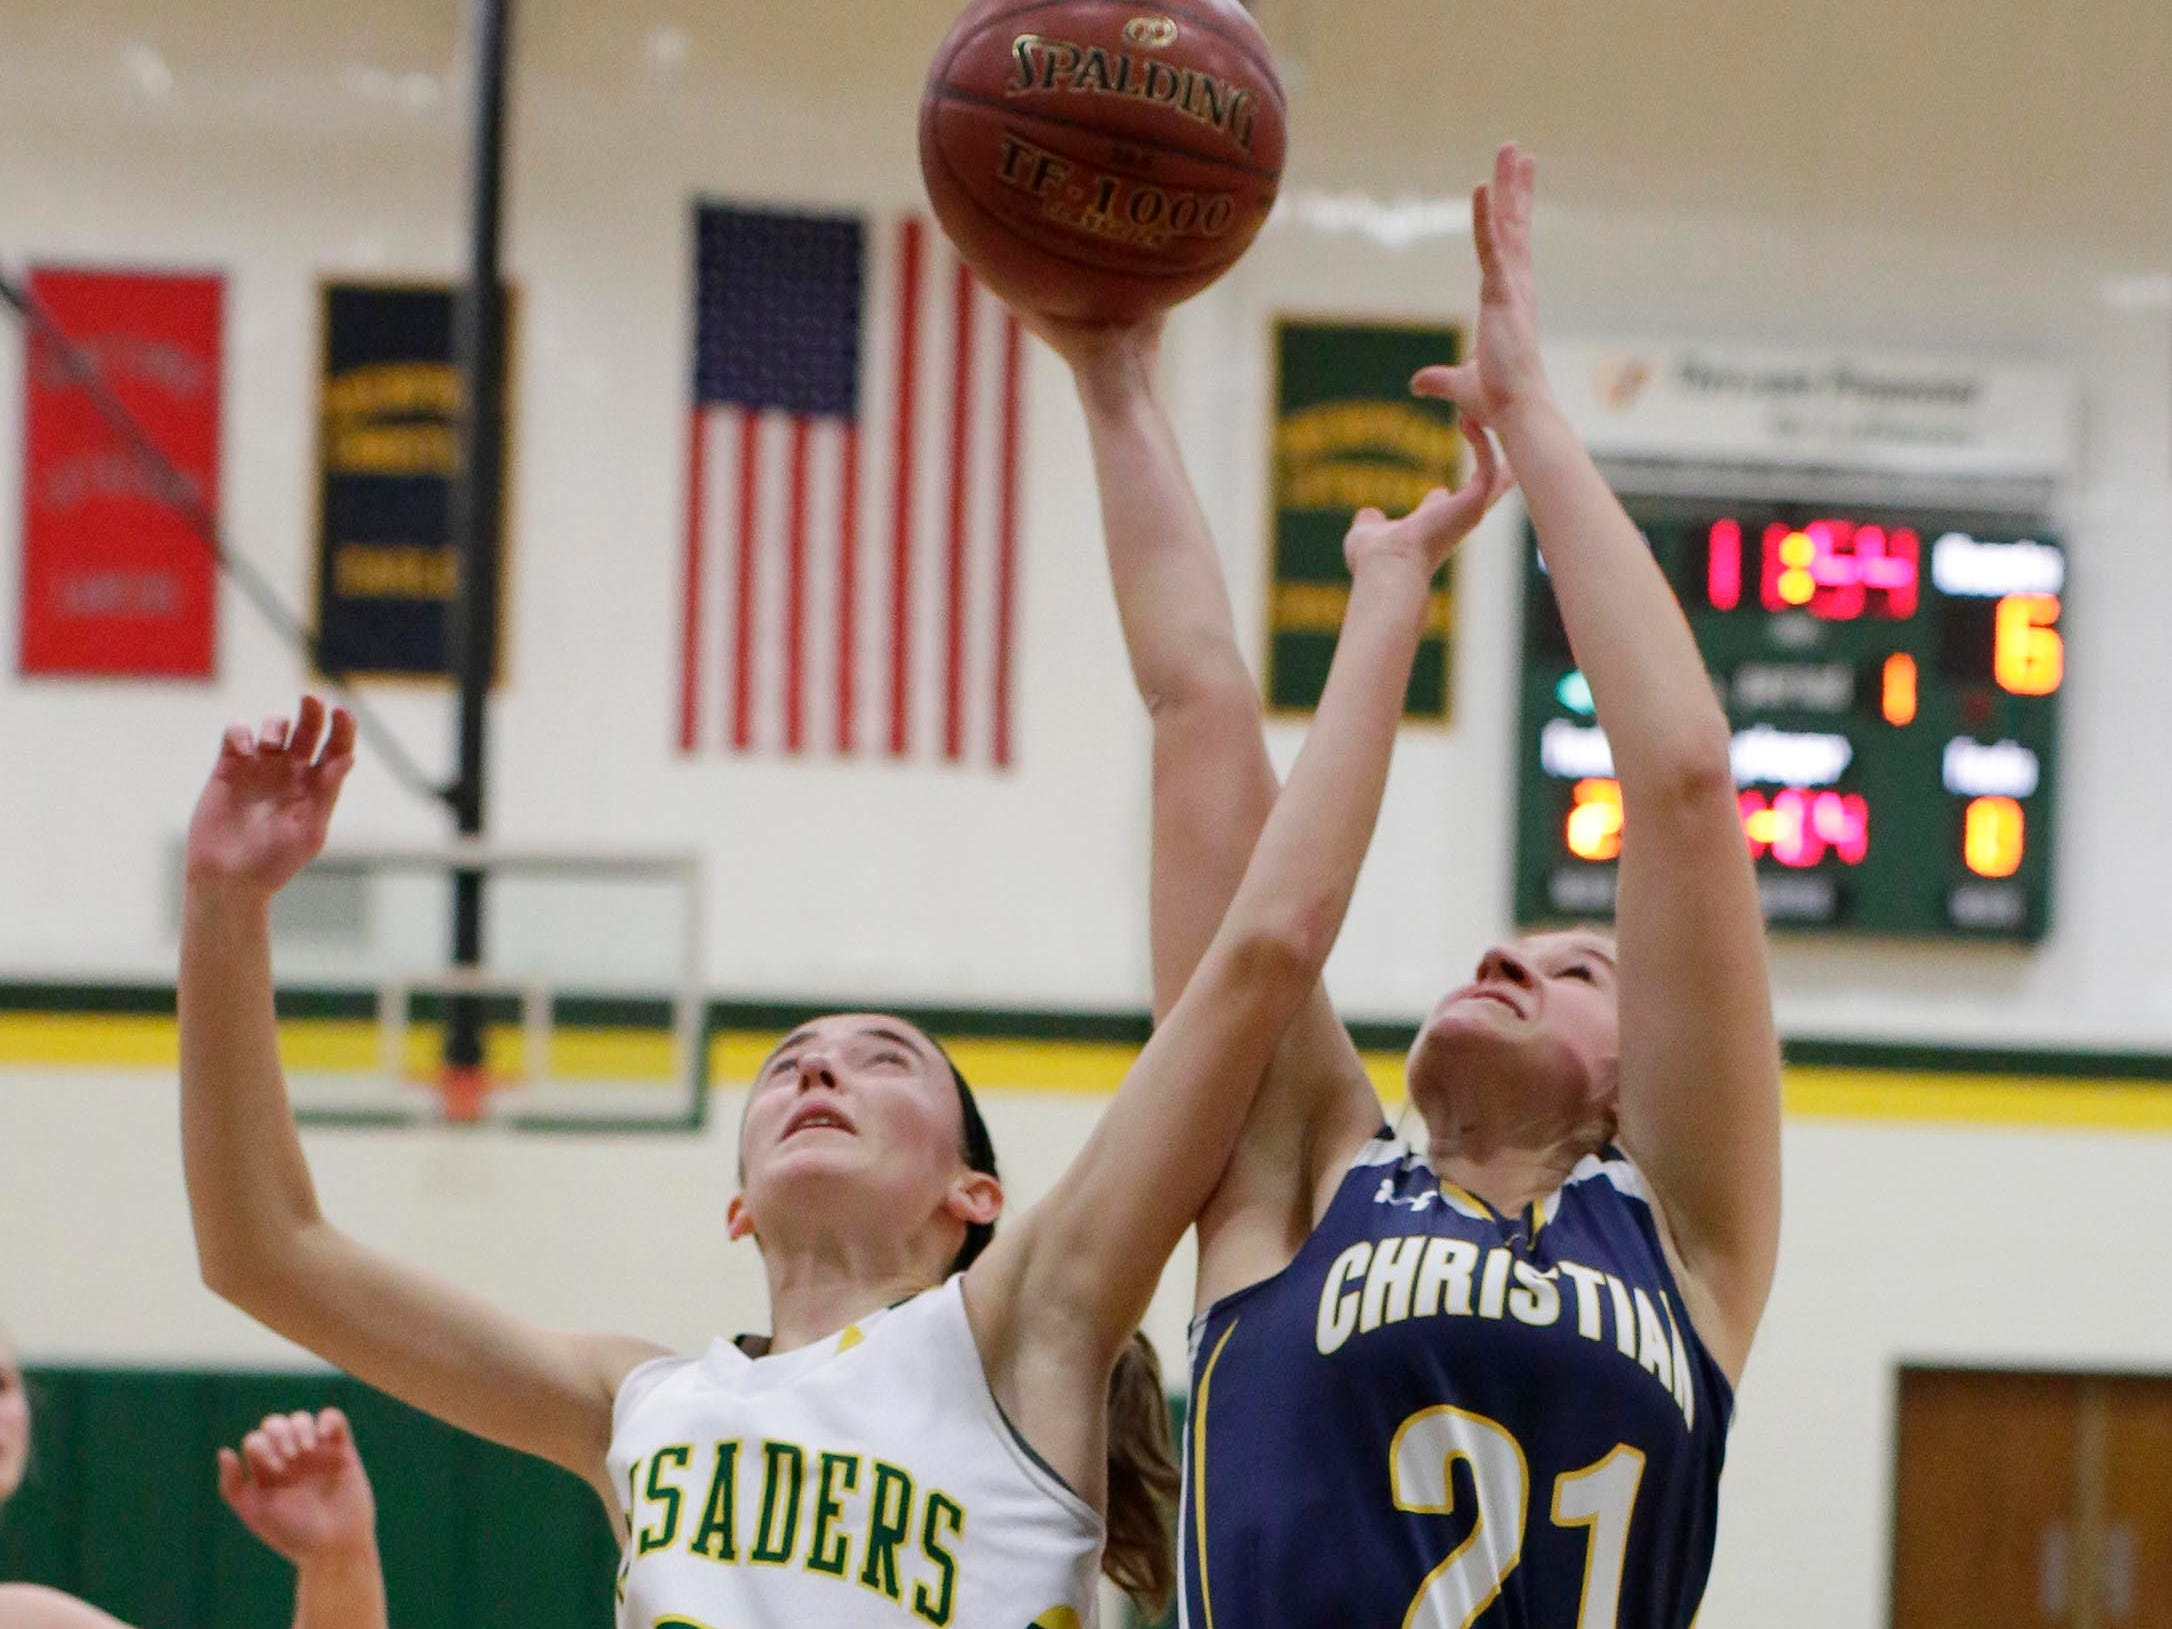 Sheboygan Lutheran's Katelyn With (5) and Sheboygan Christian's Natalie Grasse (21) battle for a rebound at Lutheran,  Thursday, January 24, 2019, in Sheboygan, Wis.